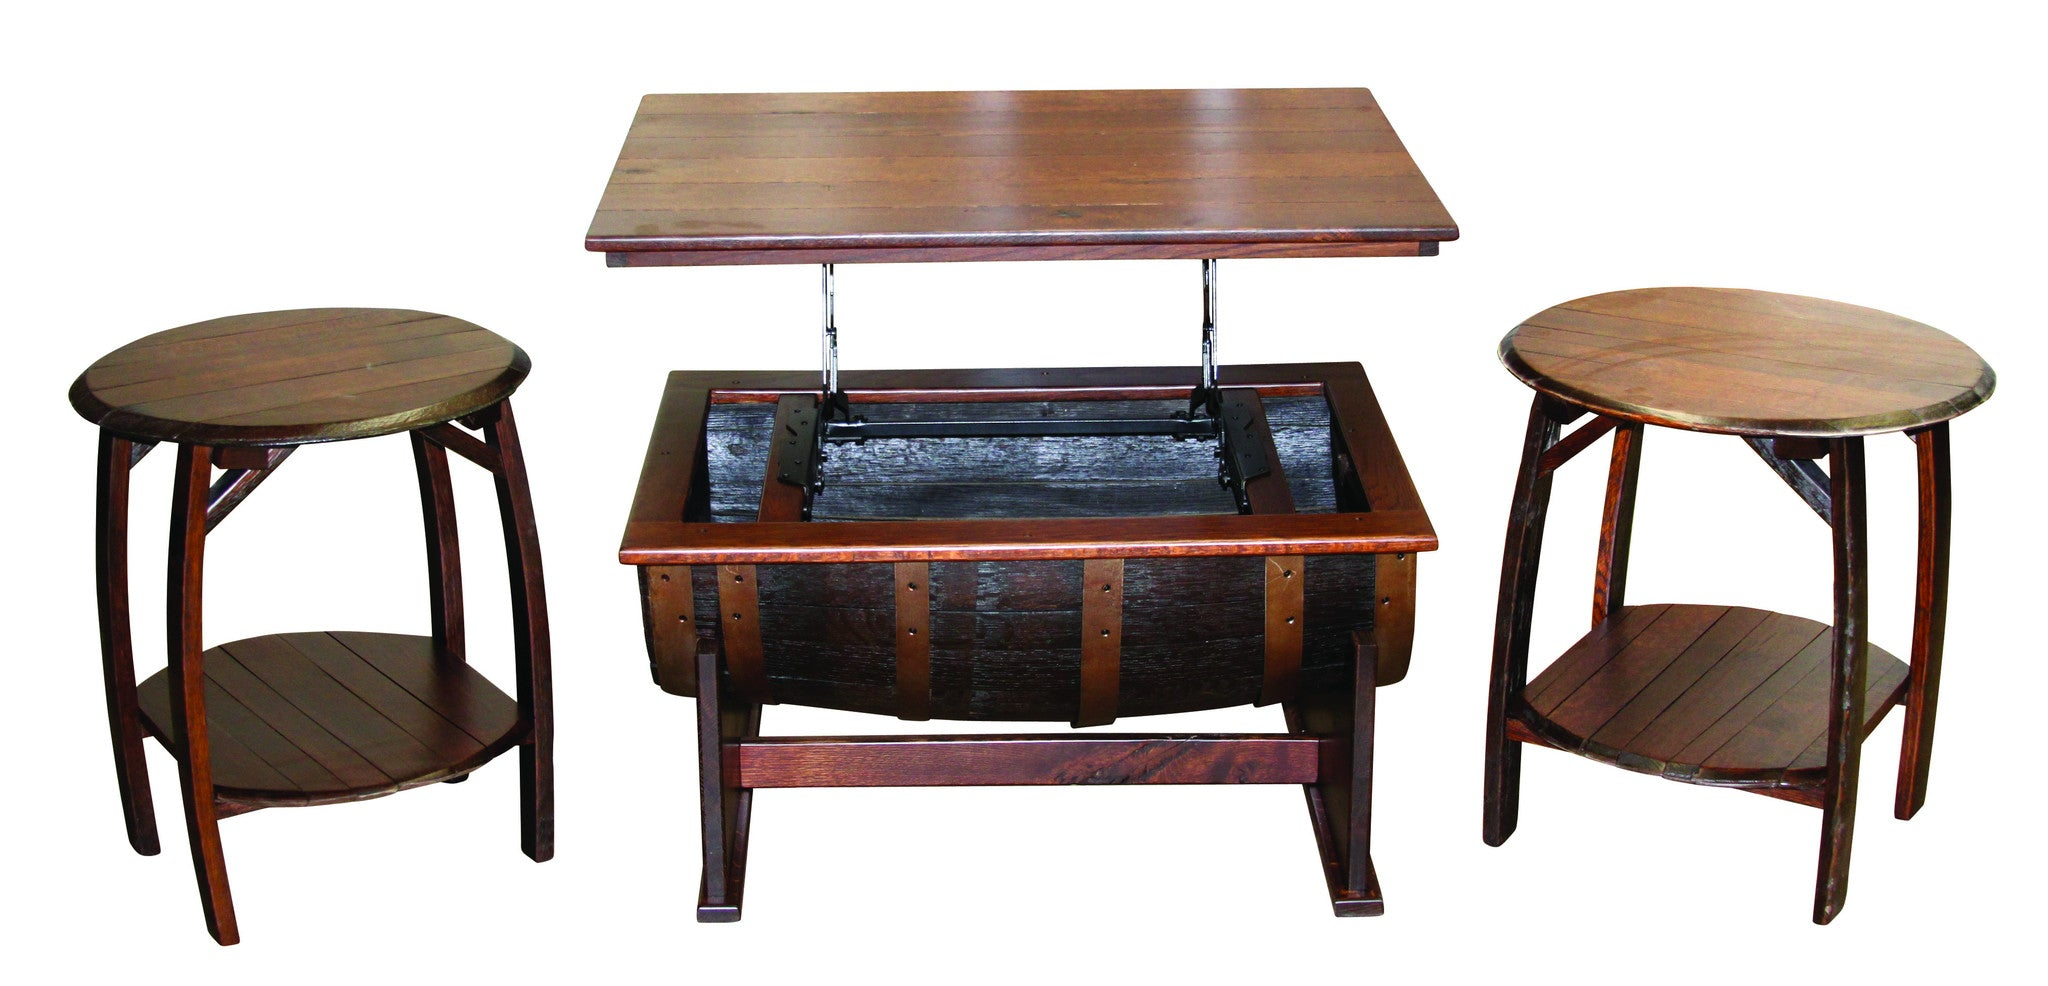 Whiskey barrel coffee table industrial craftsman whiskey barrel coffee table geotapseo Choice Image